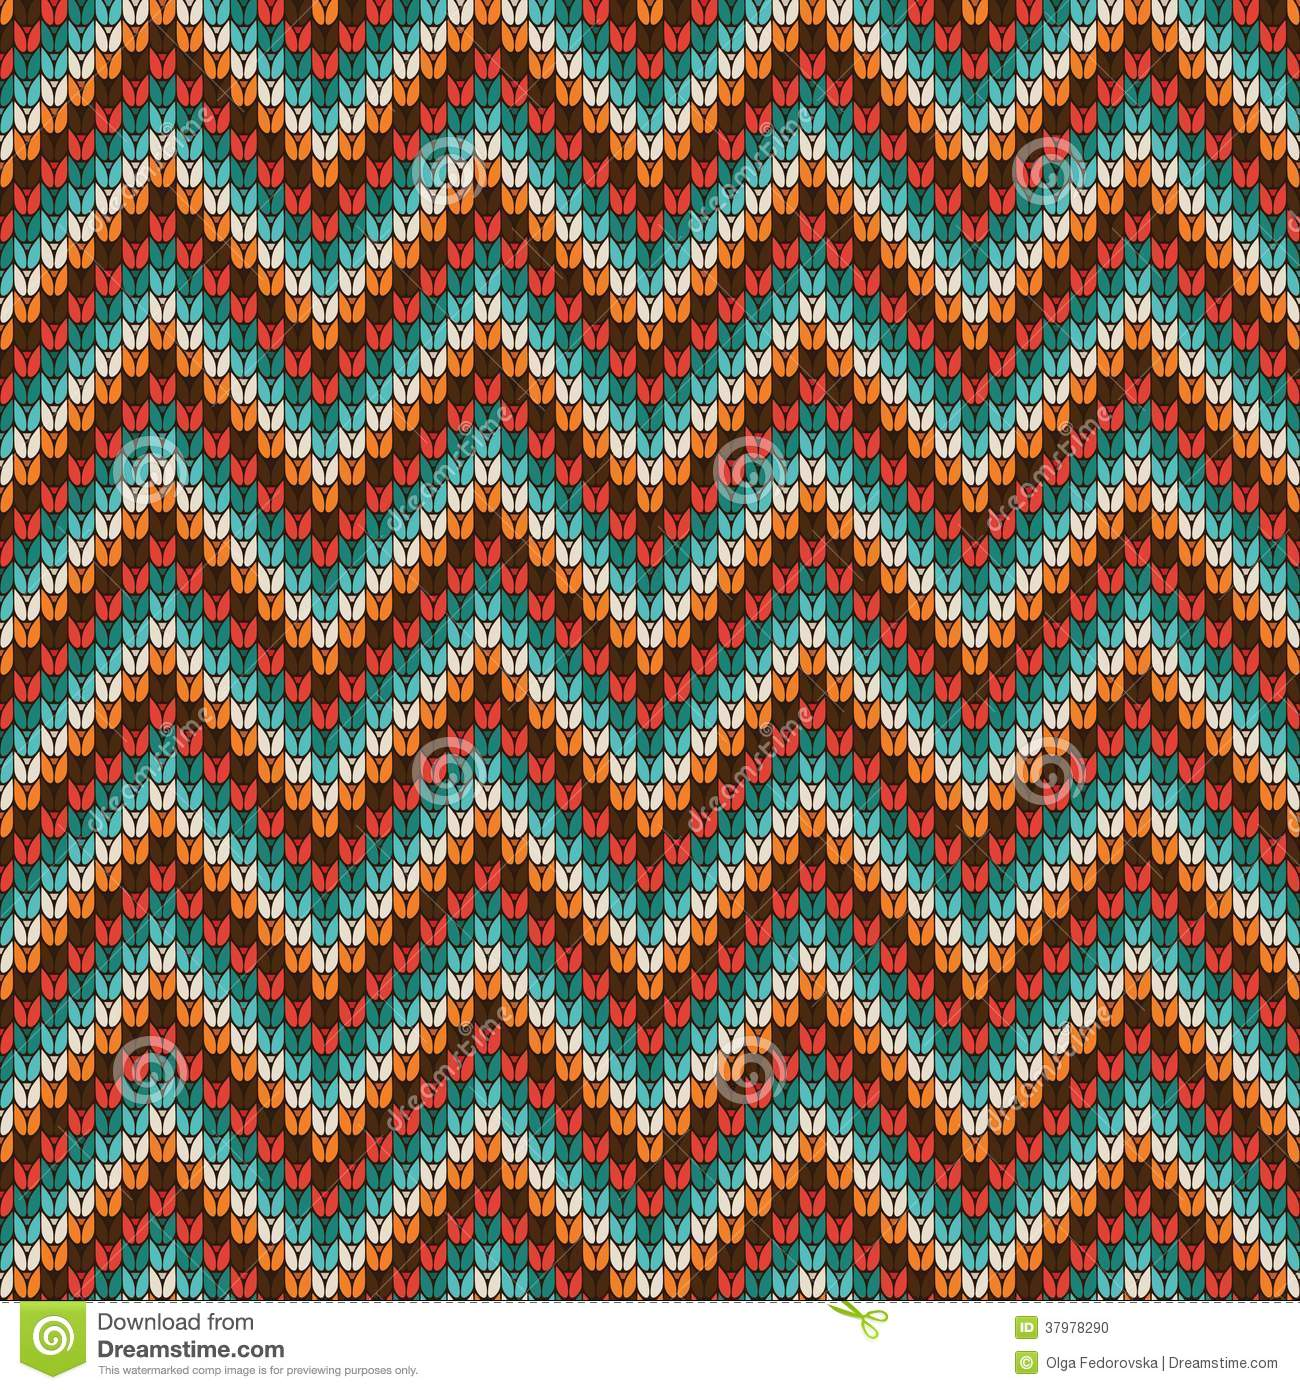 Knitting Pattern Vector Download : Seamless Zigzag Knitting Pattern Stock Photo - Image: 37978290